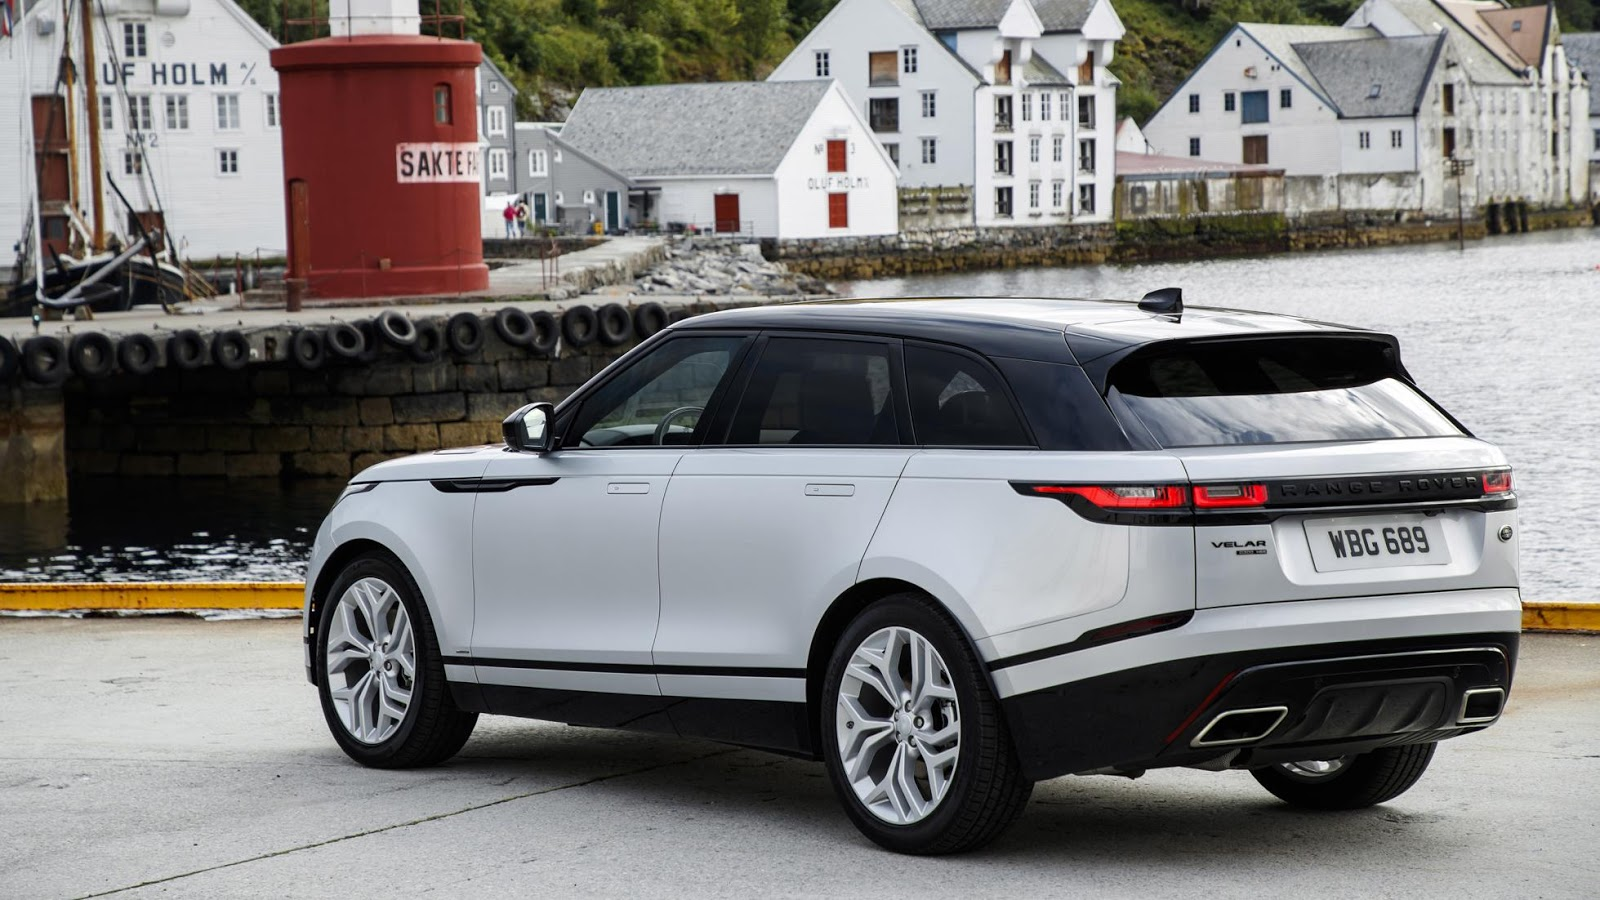 Land Rover Height Dimensions Land Rover Range Rover Velar The Automotive World